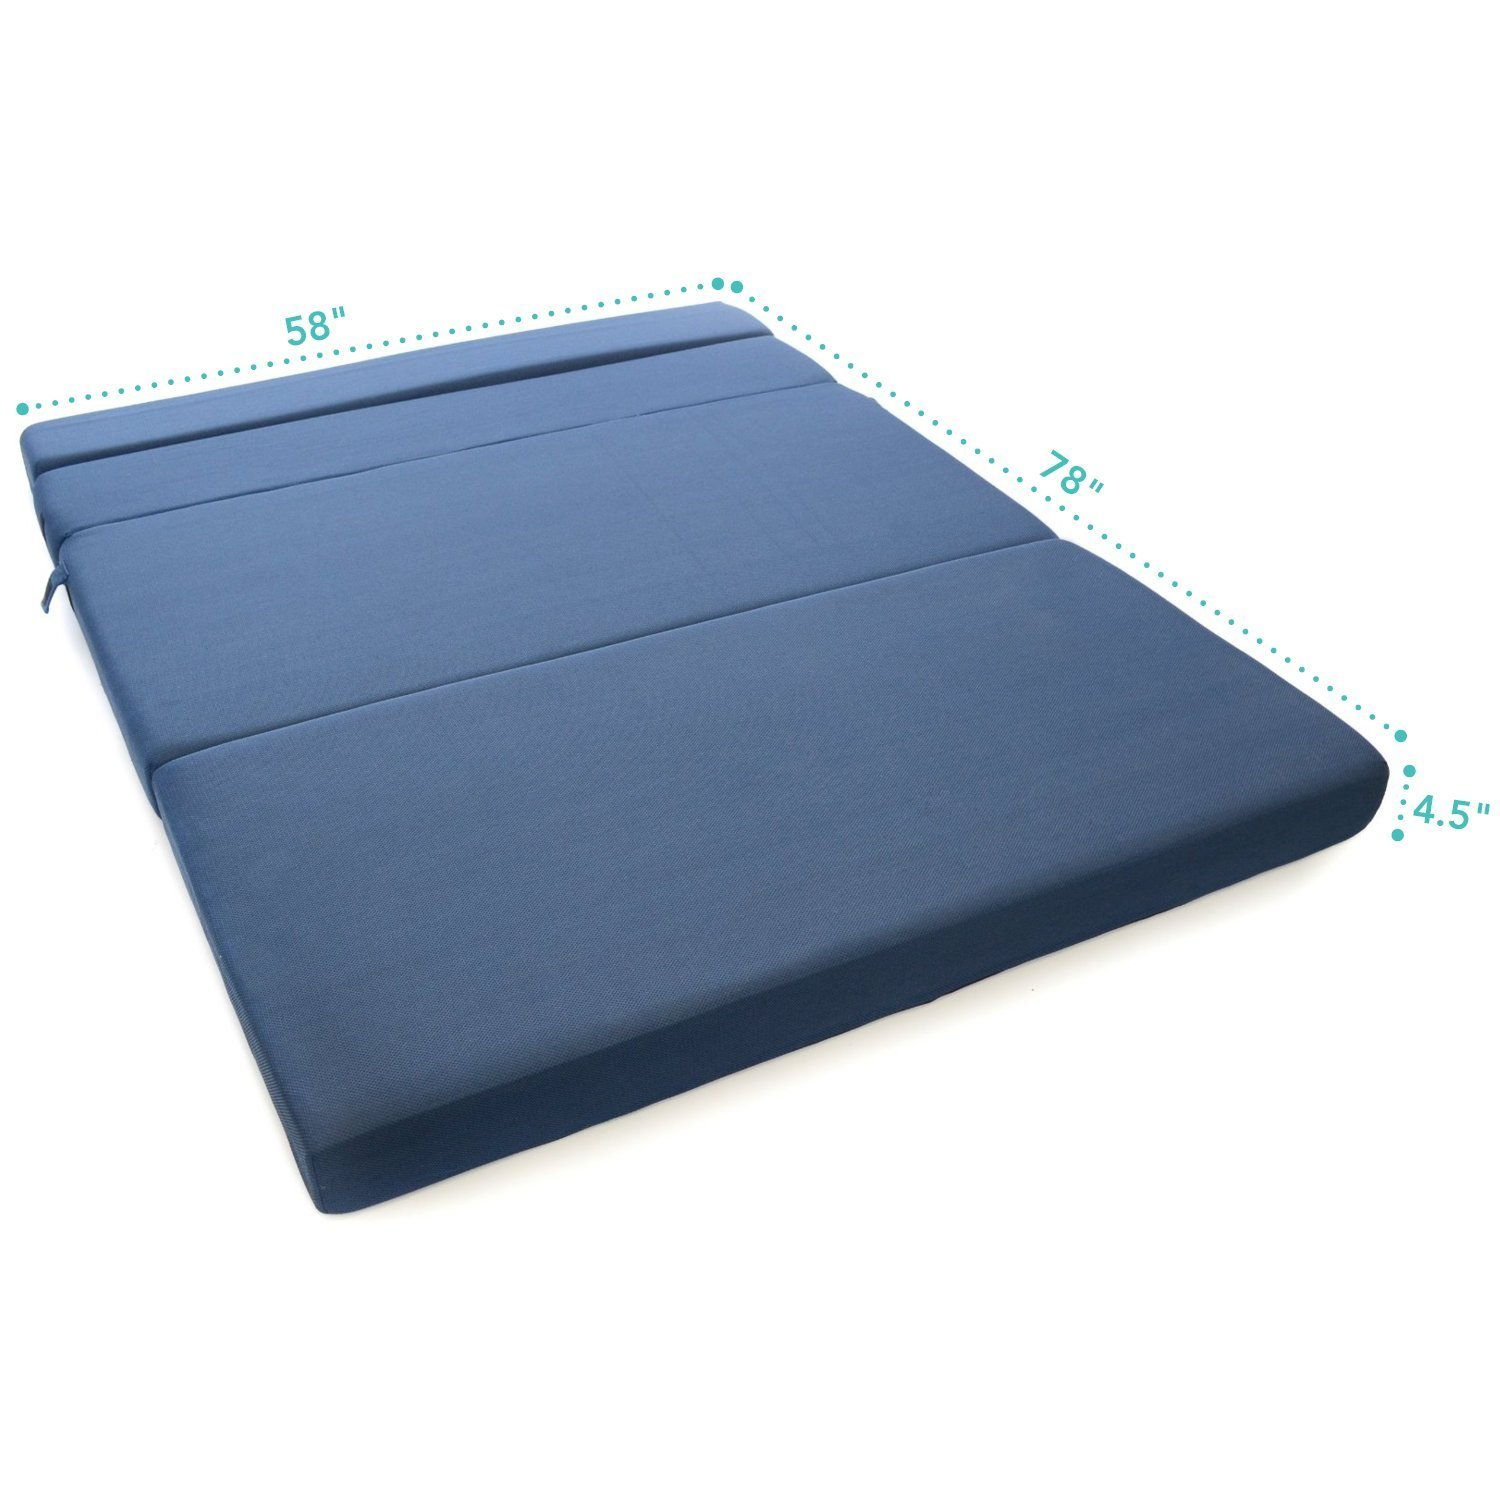 Tri fold foam folding mattress and sofa bed queen milliard bedding the ultimate sleep